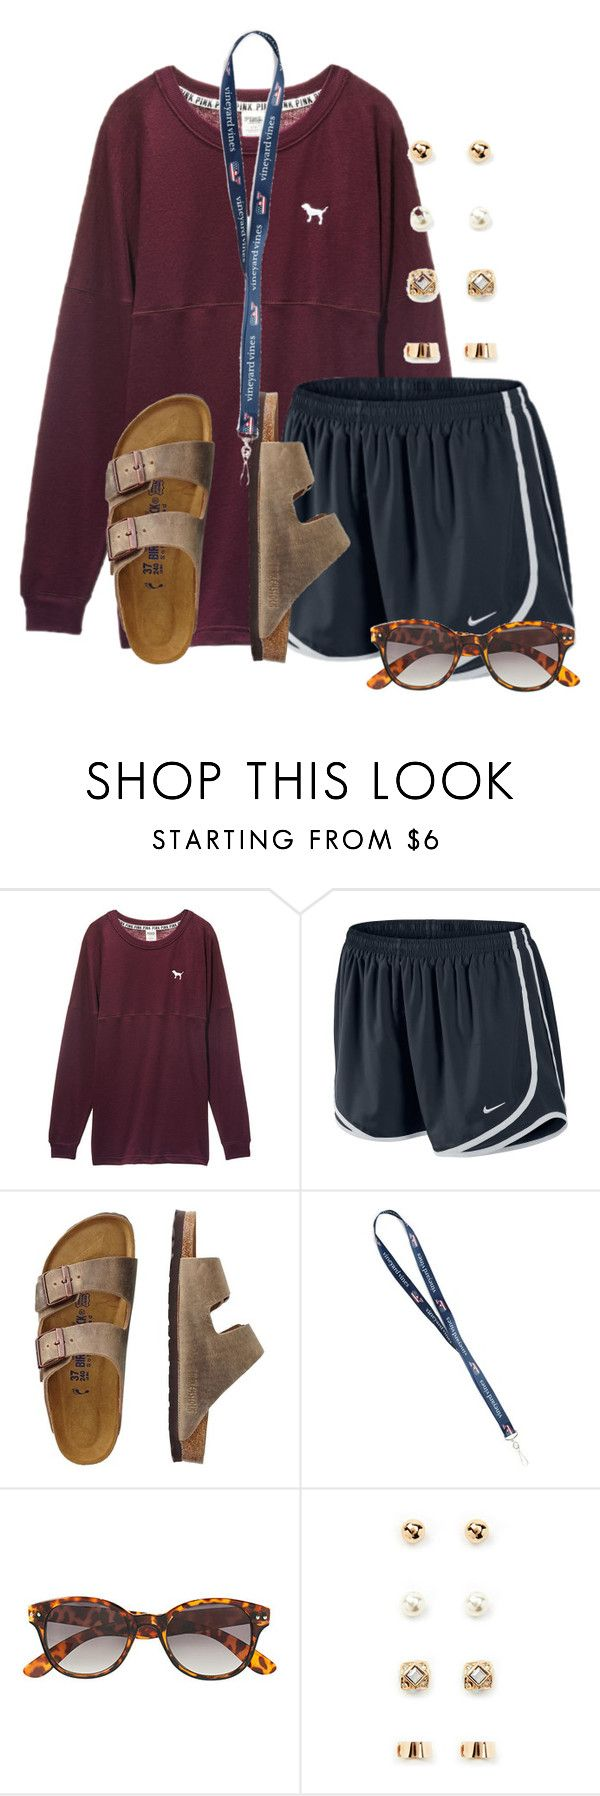 """Going out for ice cream after dinner for a last hoorah before school tomorrow"" by flroasburn ❤ liked on Polyvore featuring Victoria's Secret, NIKE, TravelSmith, H&M and Forever 21"